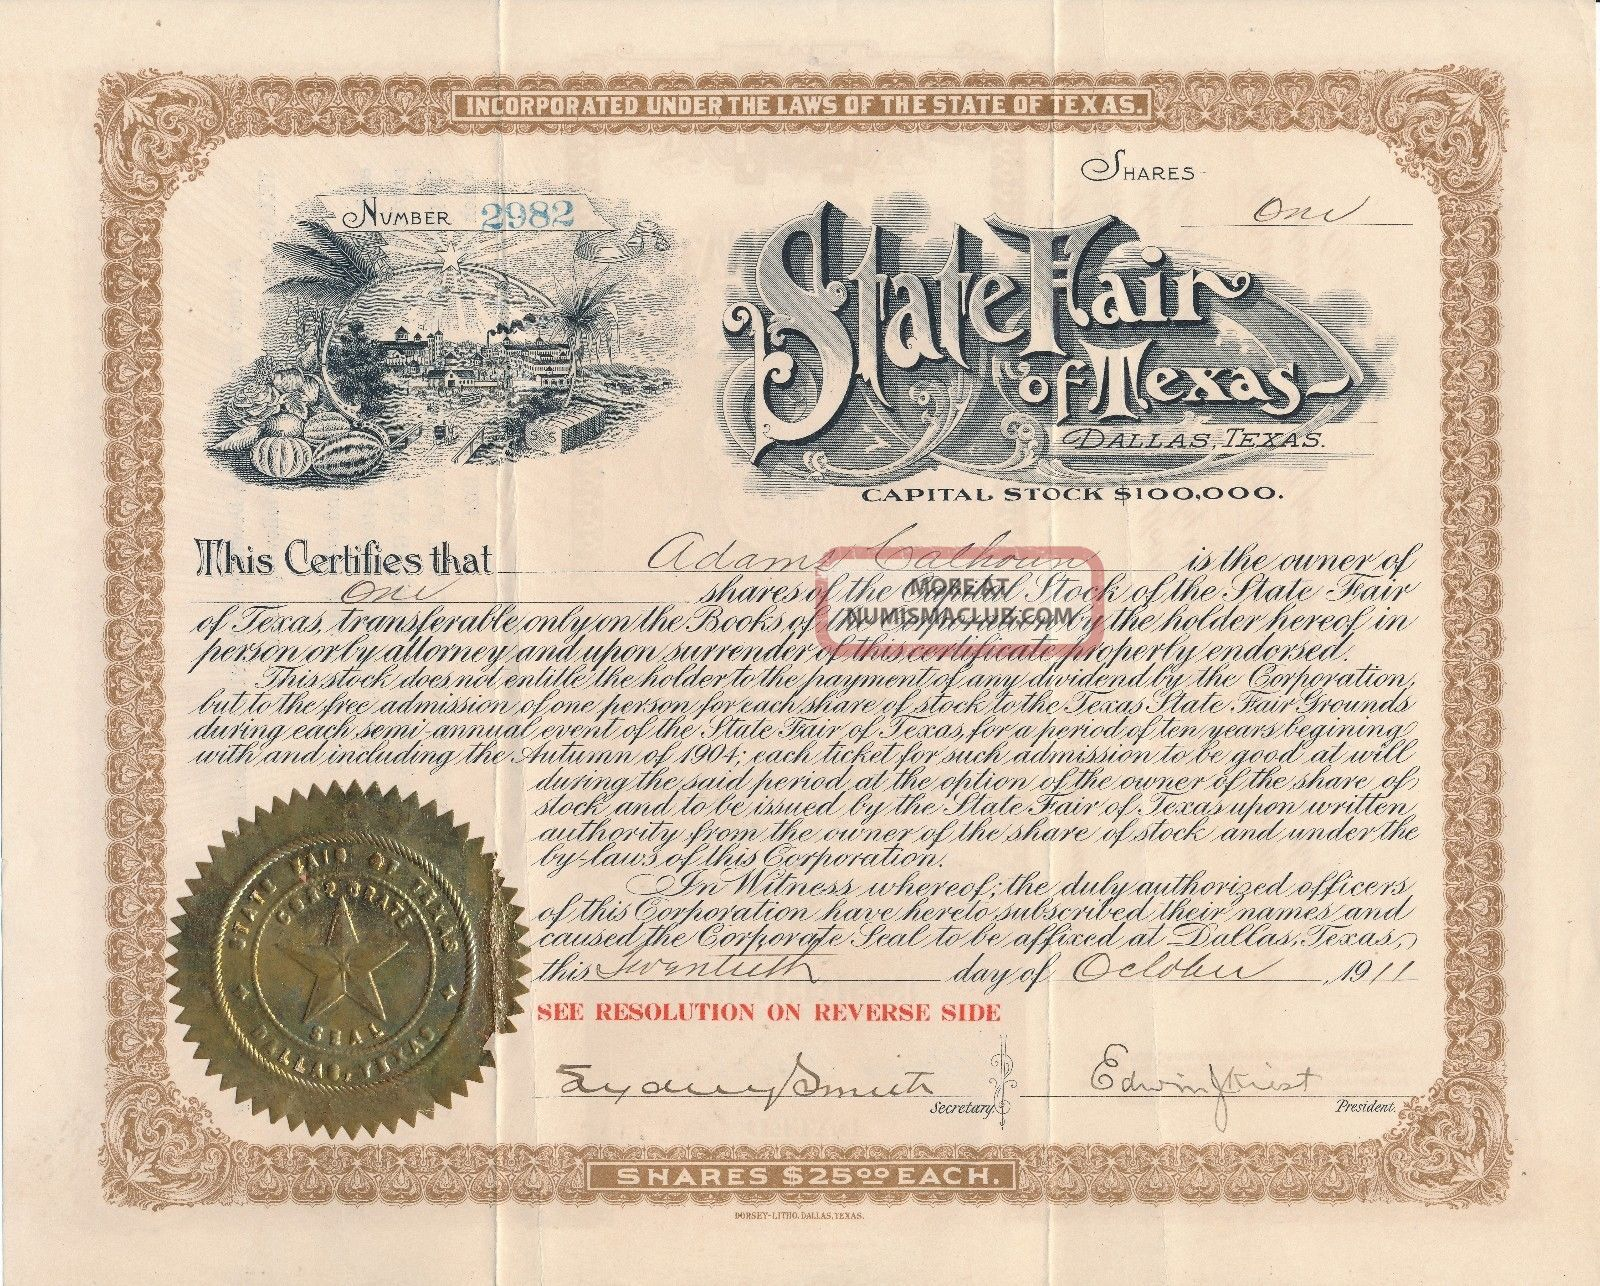 1911 State Fair Of Texas Dallas Stock Certificate / Rare Stocks & Bonds, Scripophily photo